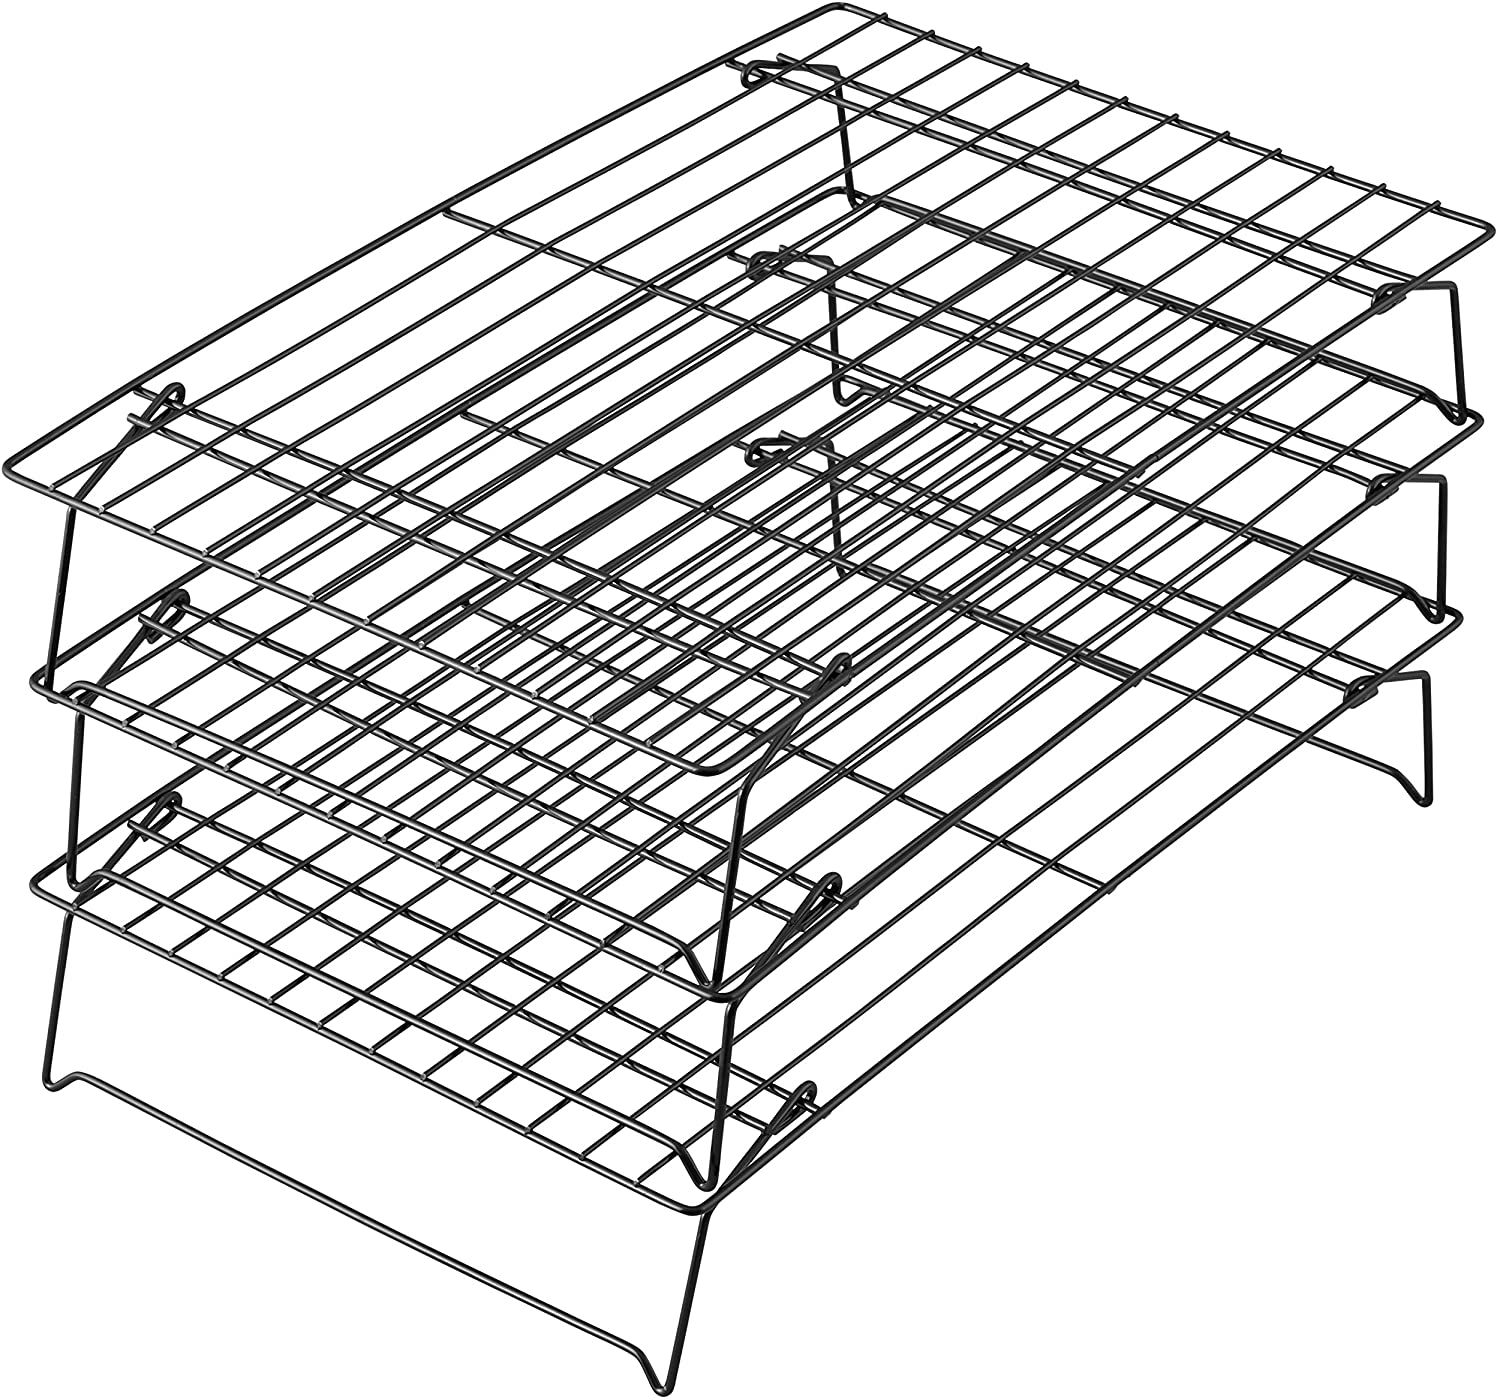 Wilton Excelle Elitetier Cooling Rack For Cookiescakes And More